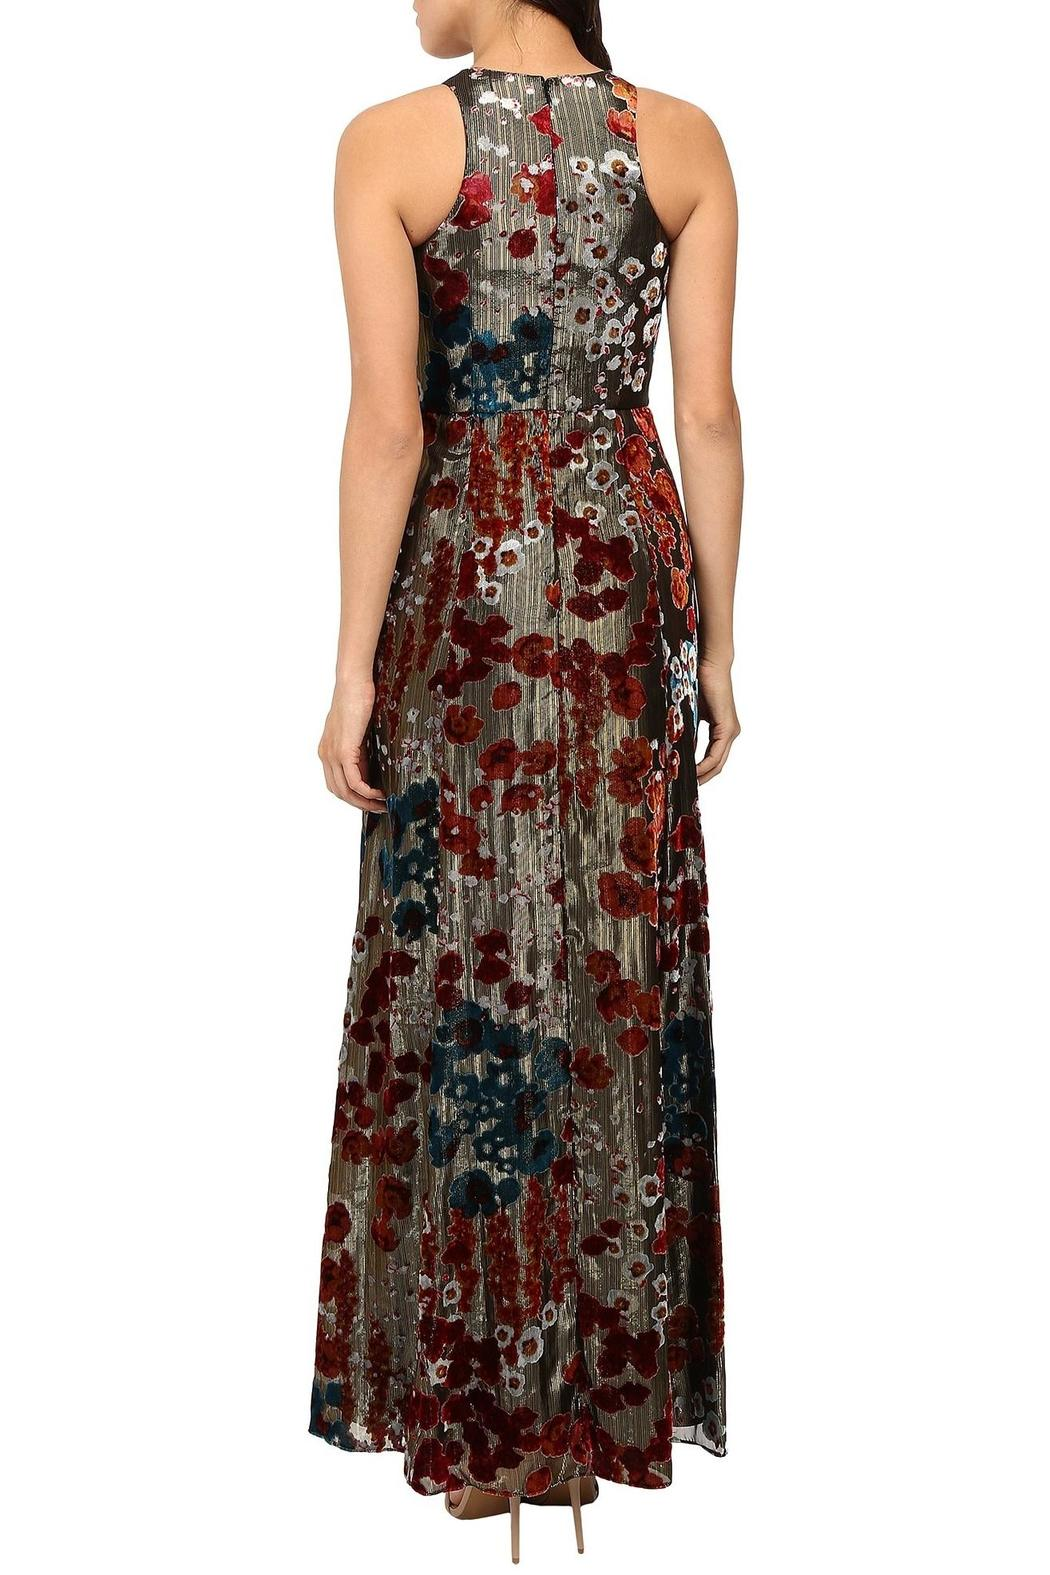 Aidan by Aidan Mattox Sleeveless Floral Gown - Front Full Image